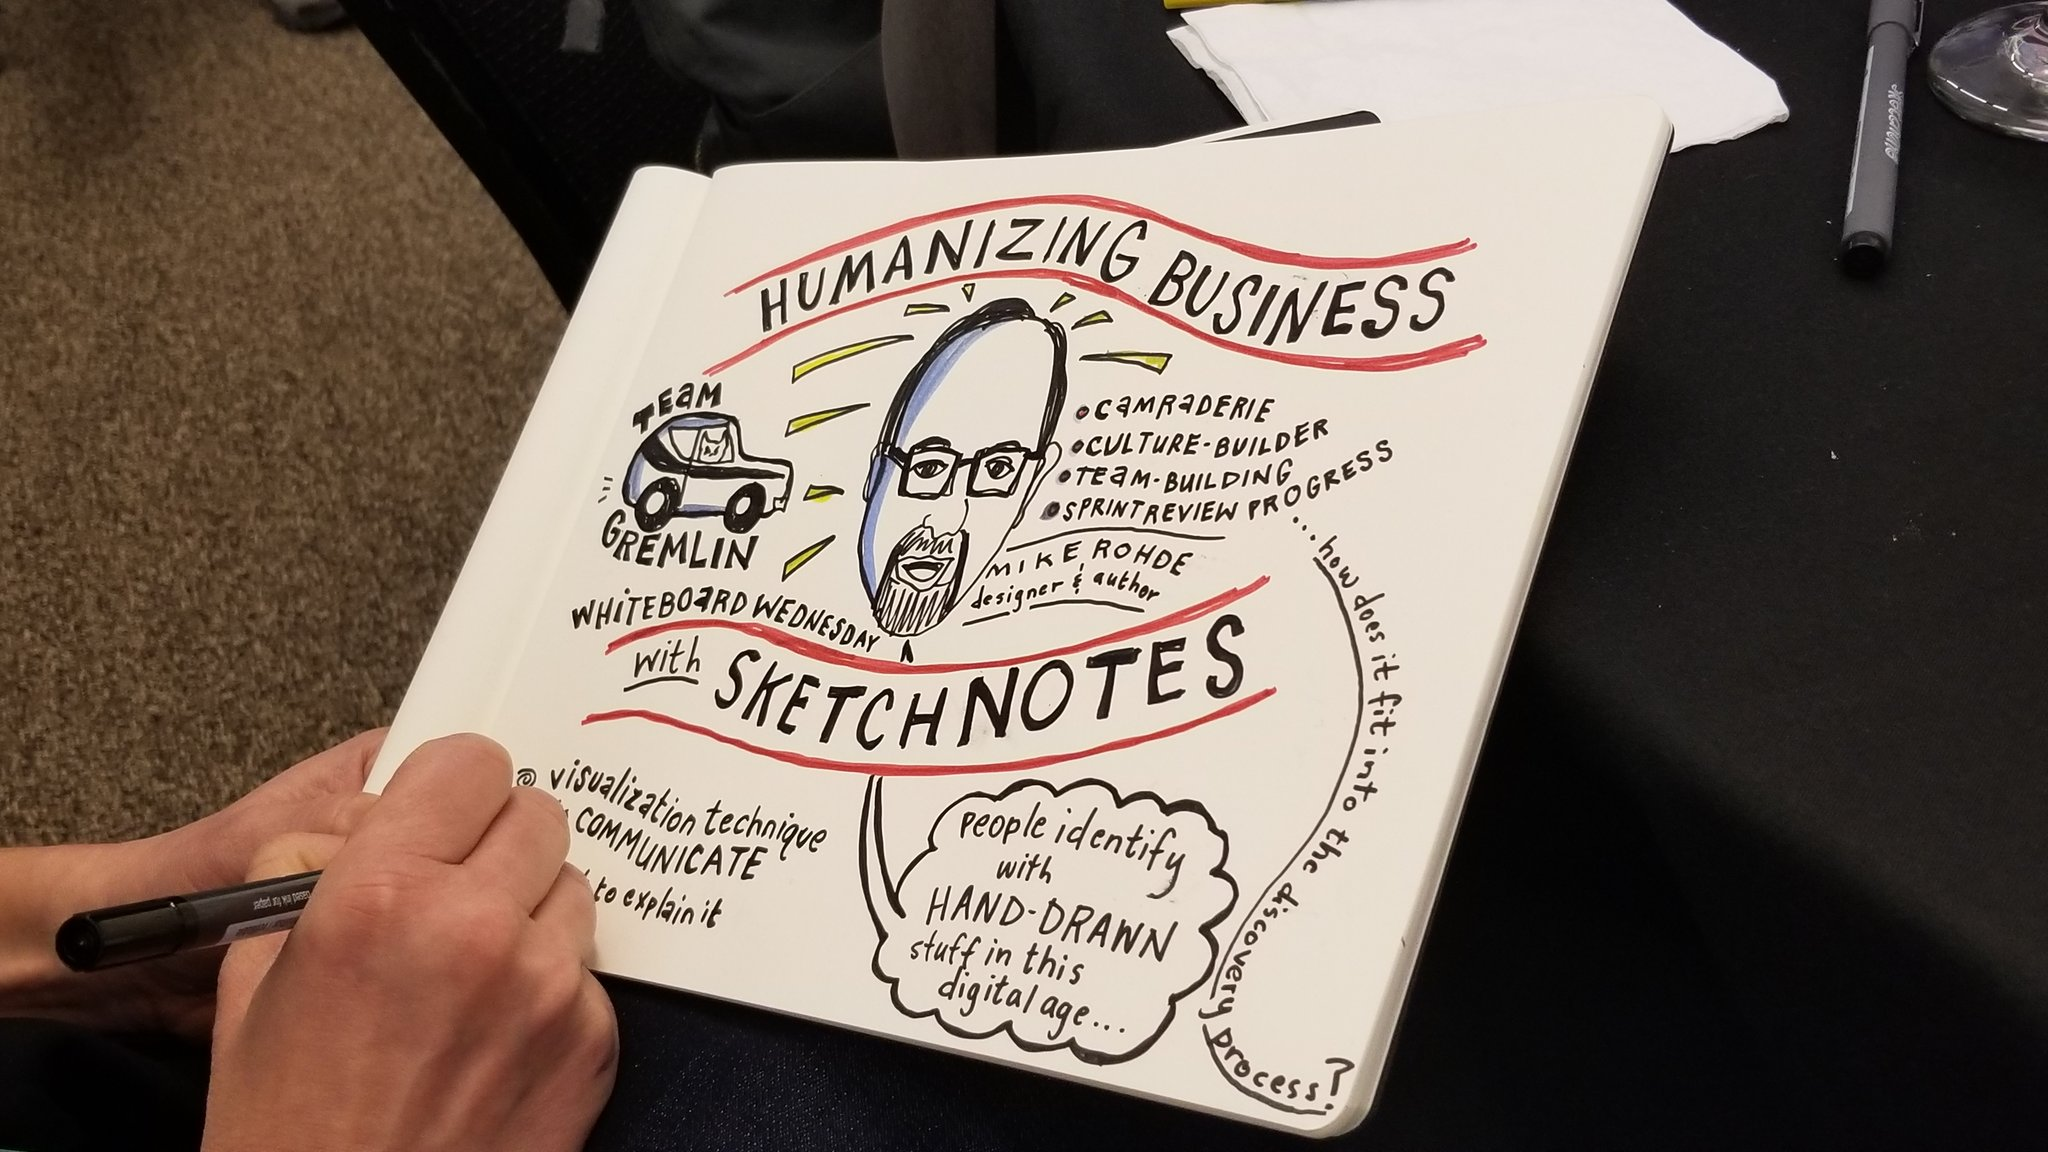 sketchnotes of the godfather of sketchnoting, Mike Rohde